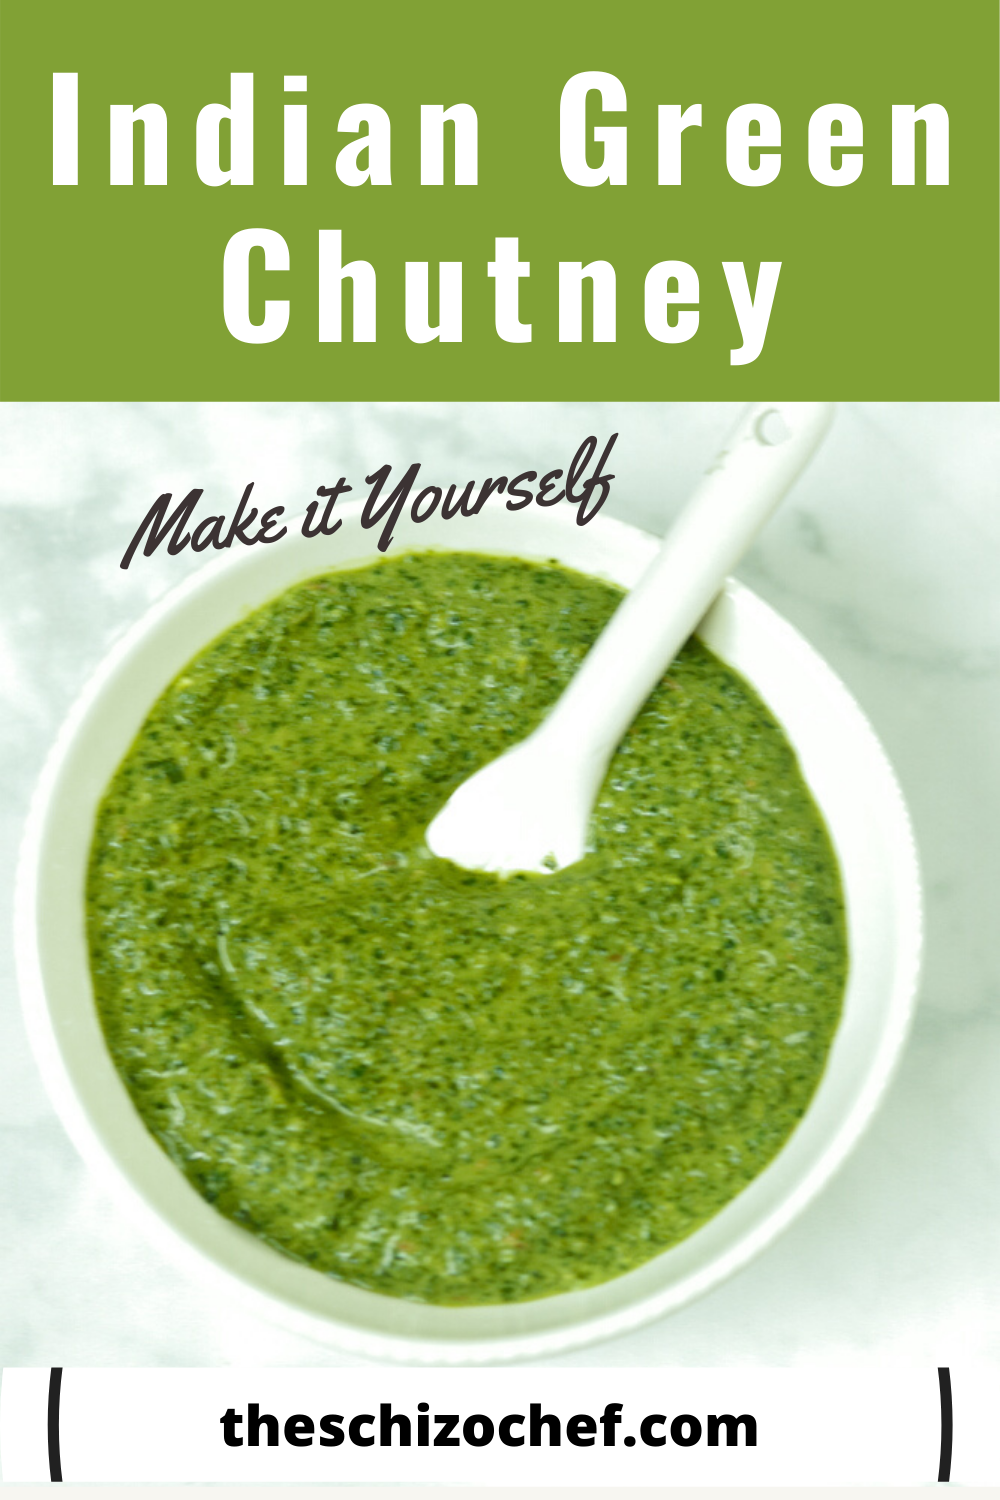 Indian green chutney in a bowl with text